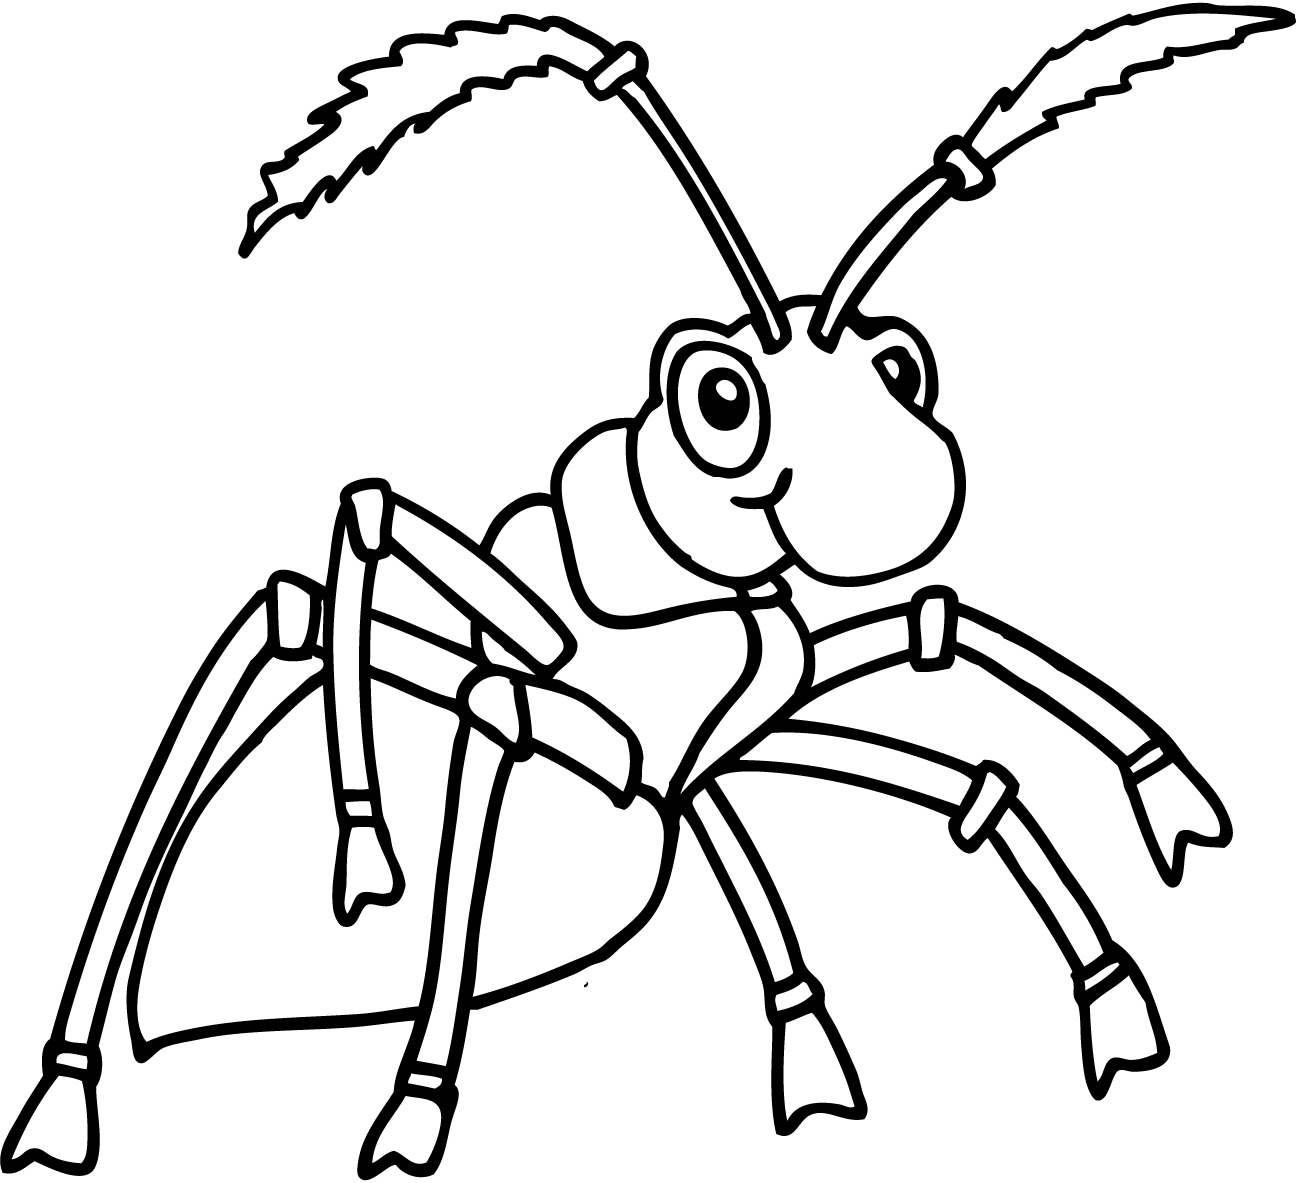 1296x1183 Ant Coloring Pages And Classroom Activities Train Track Ants Page